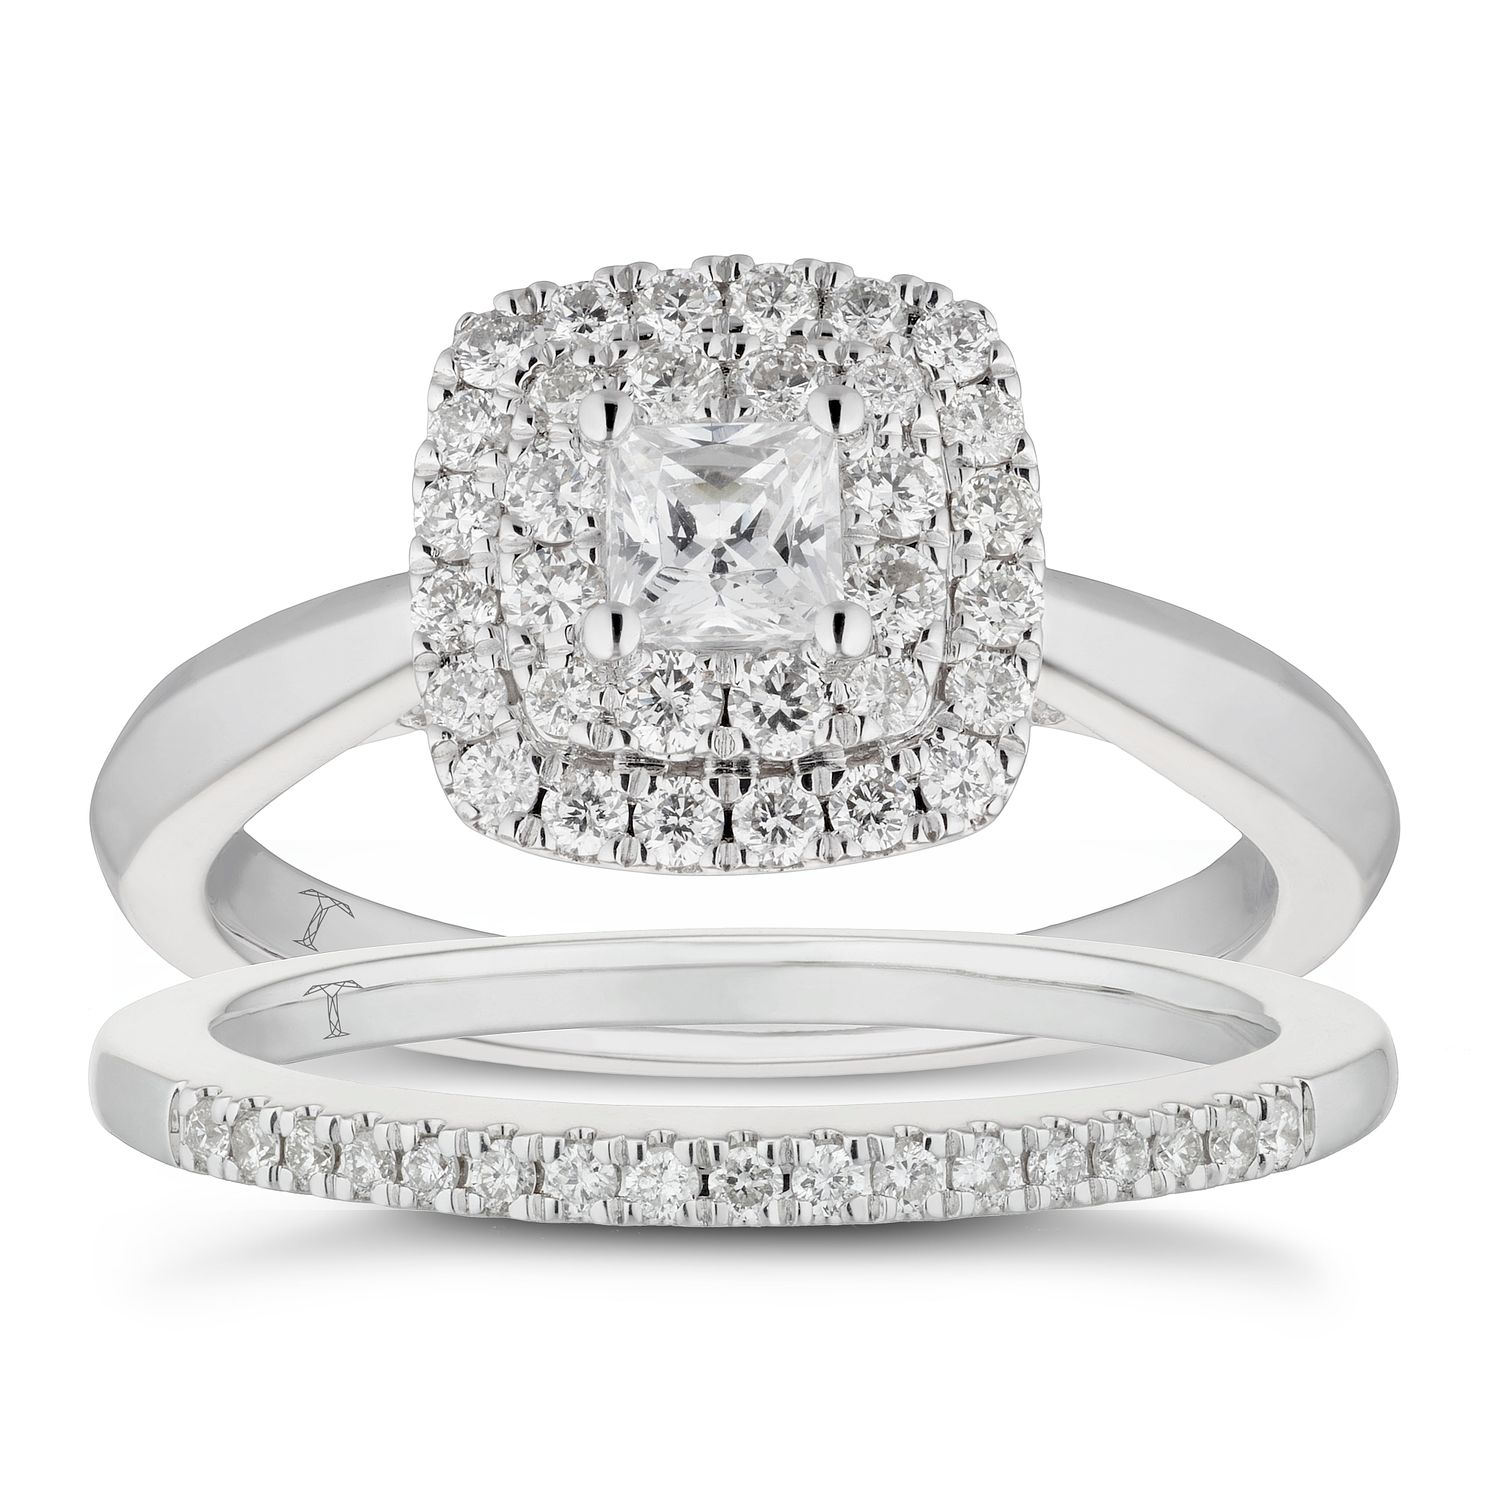 Tolkowsky 18ct White Gold 0.75ct Total Diamond Bridal Set - Product number 5894875